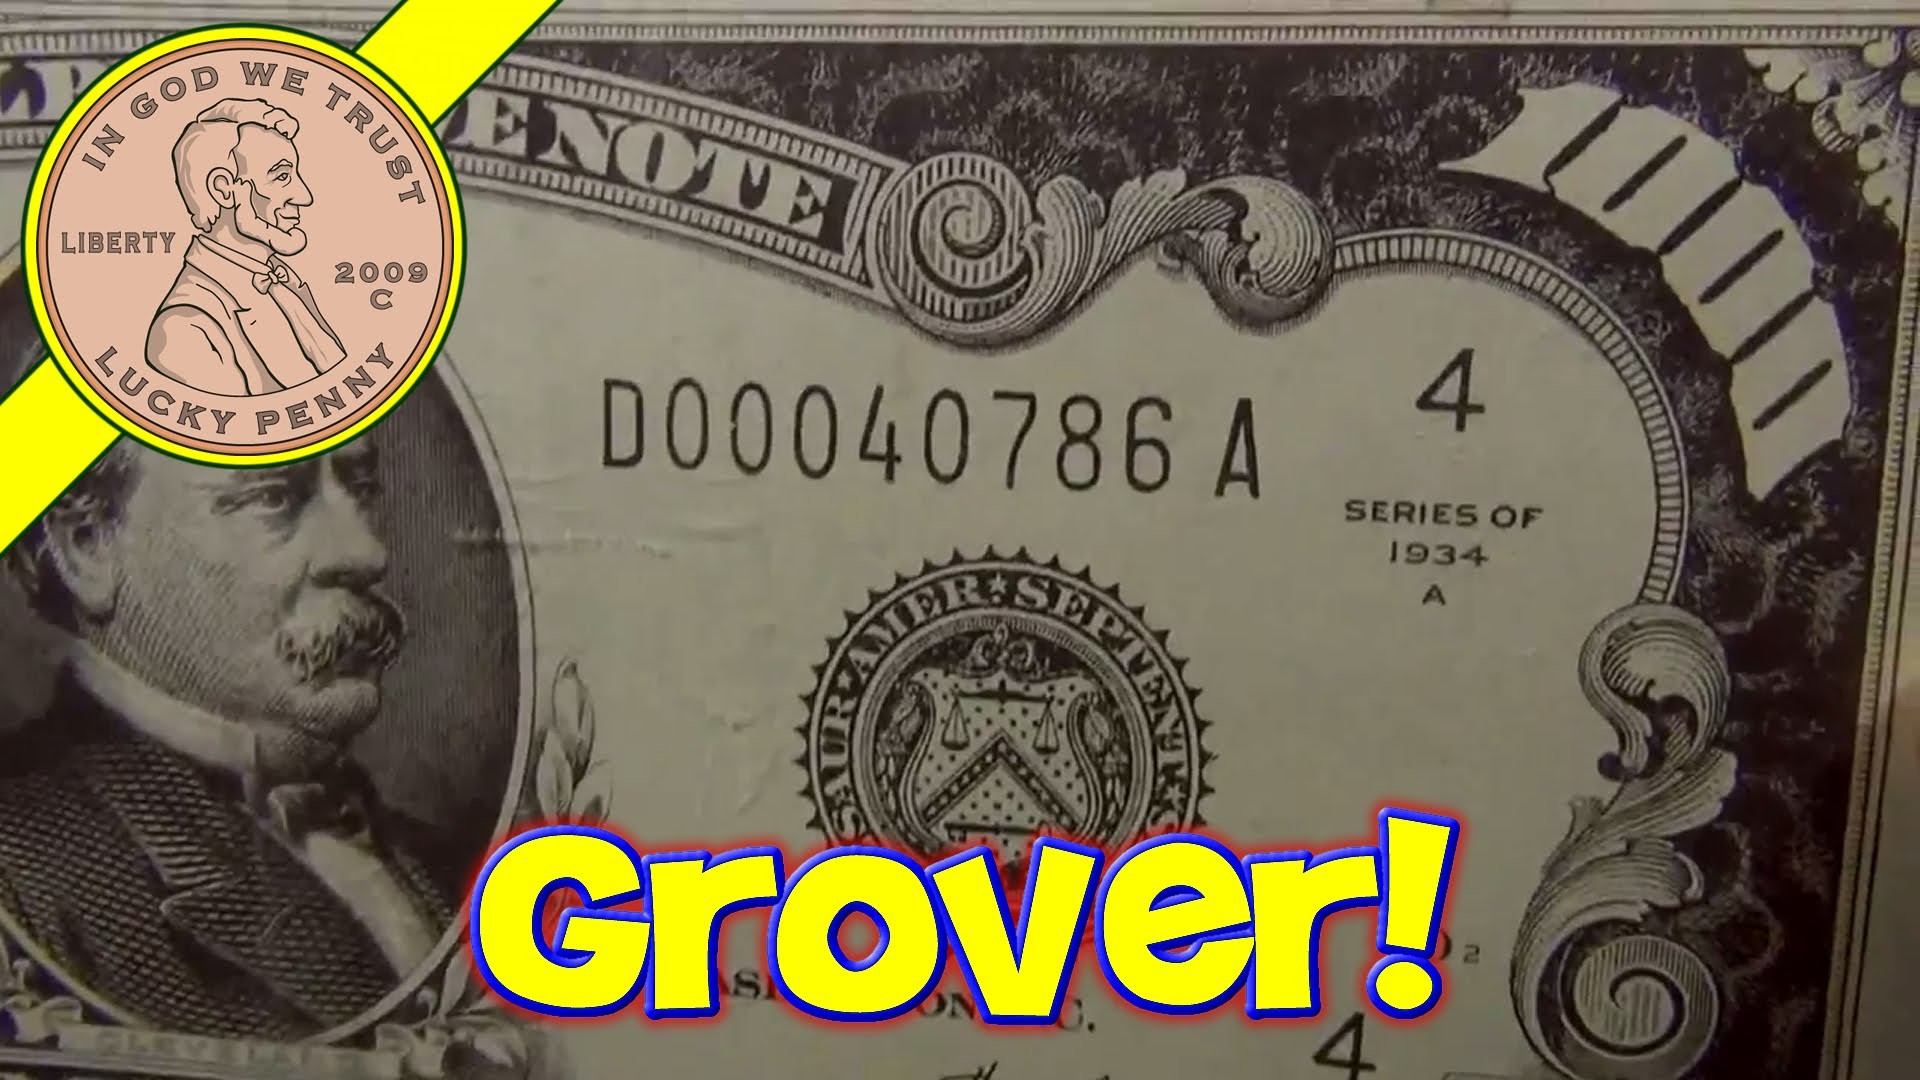 1920x1080 $1000 Dollar Bills Grover Cleveland Ruled Money Memo Desk Note Pads, Planet  Greetings - YouTube